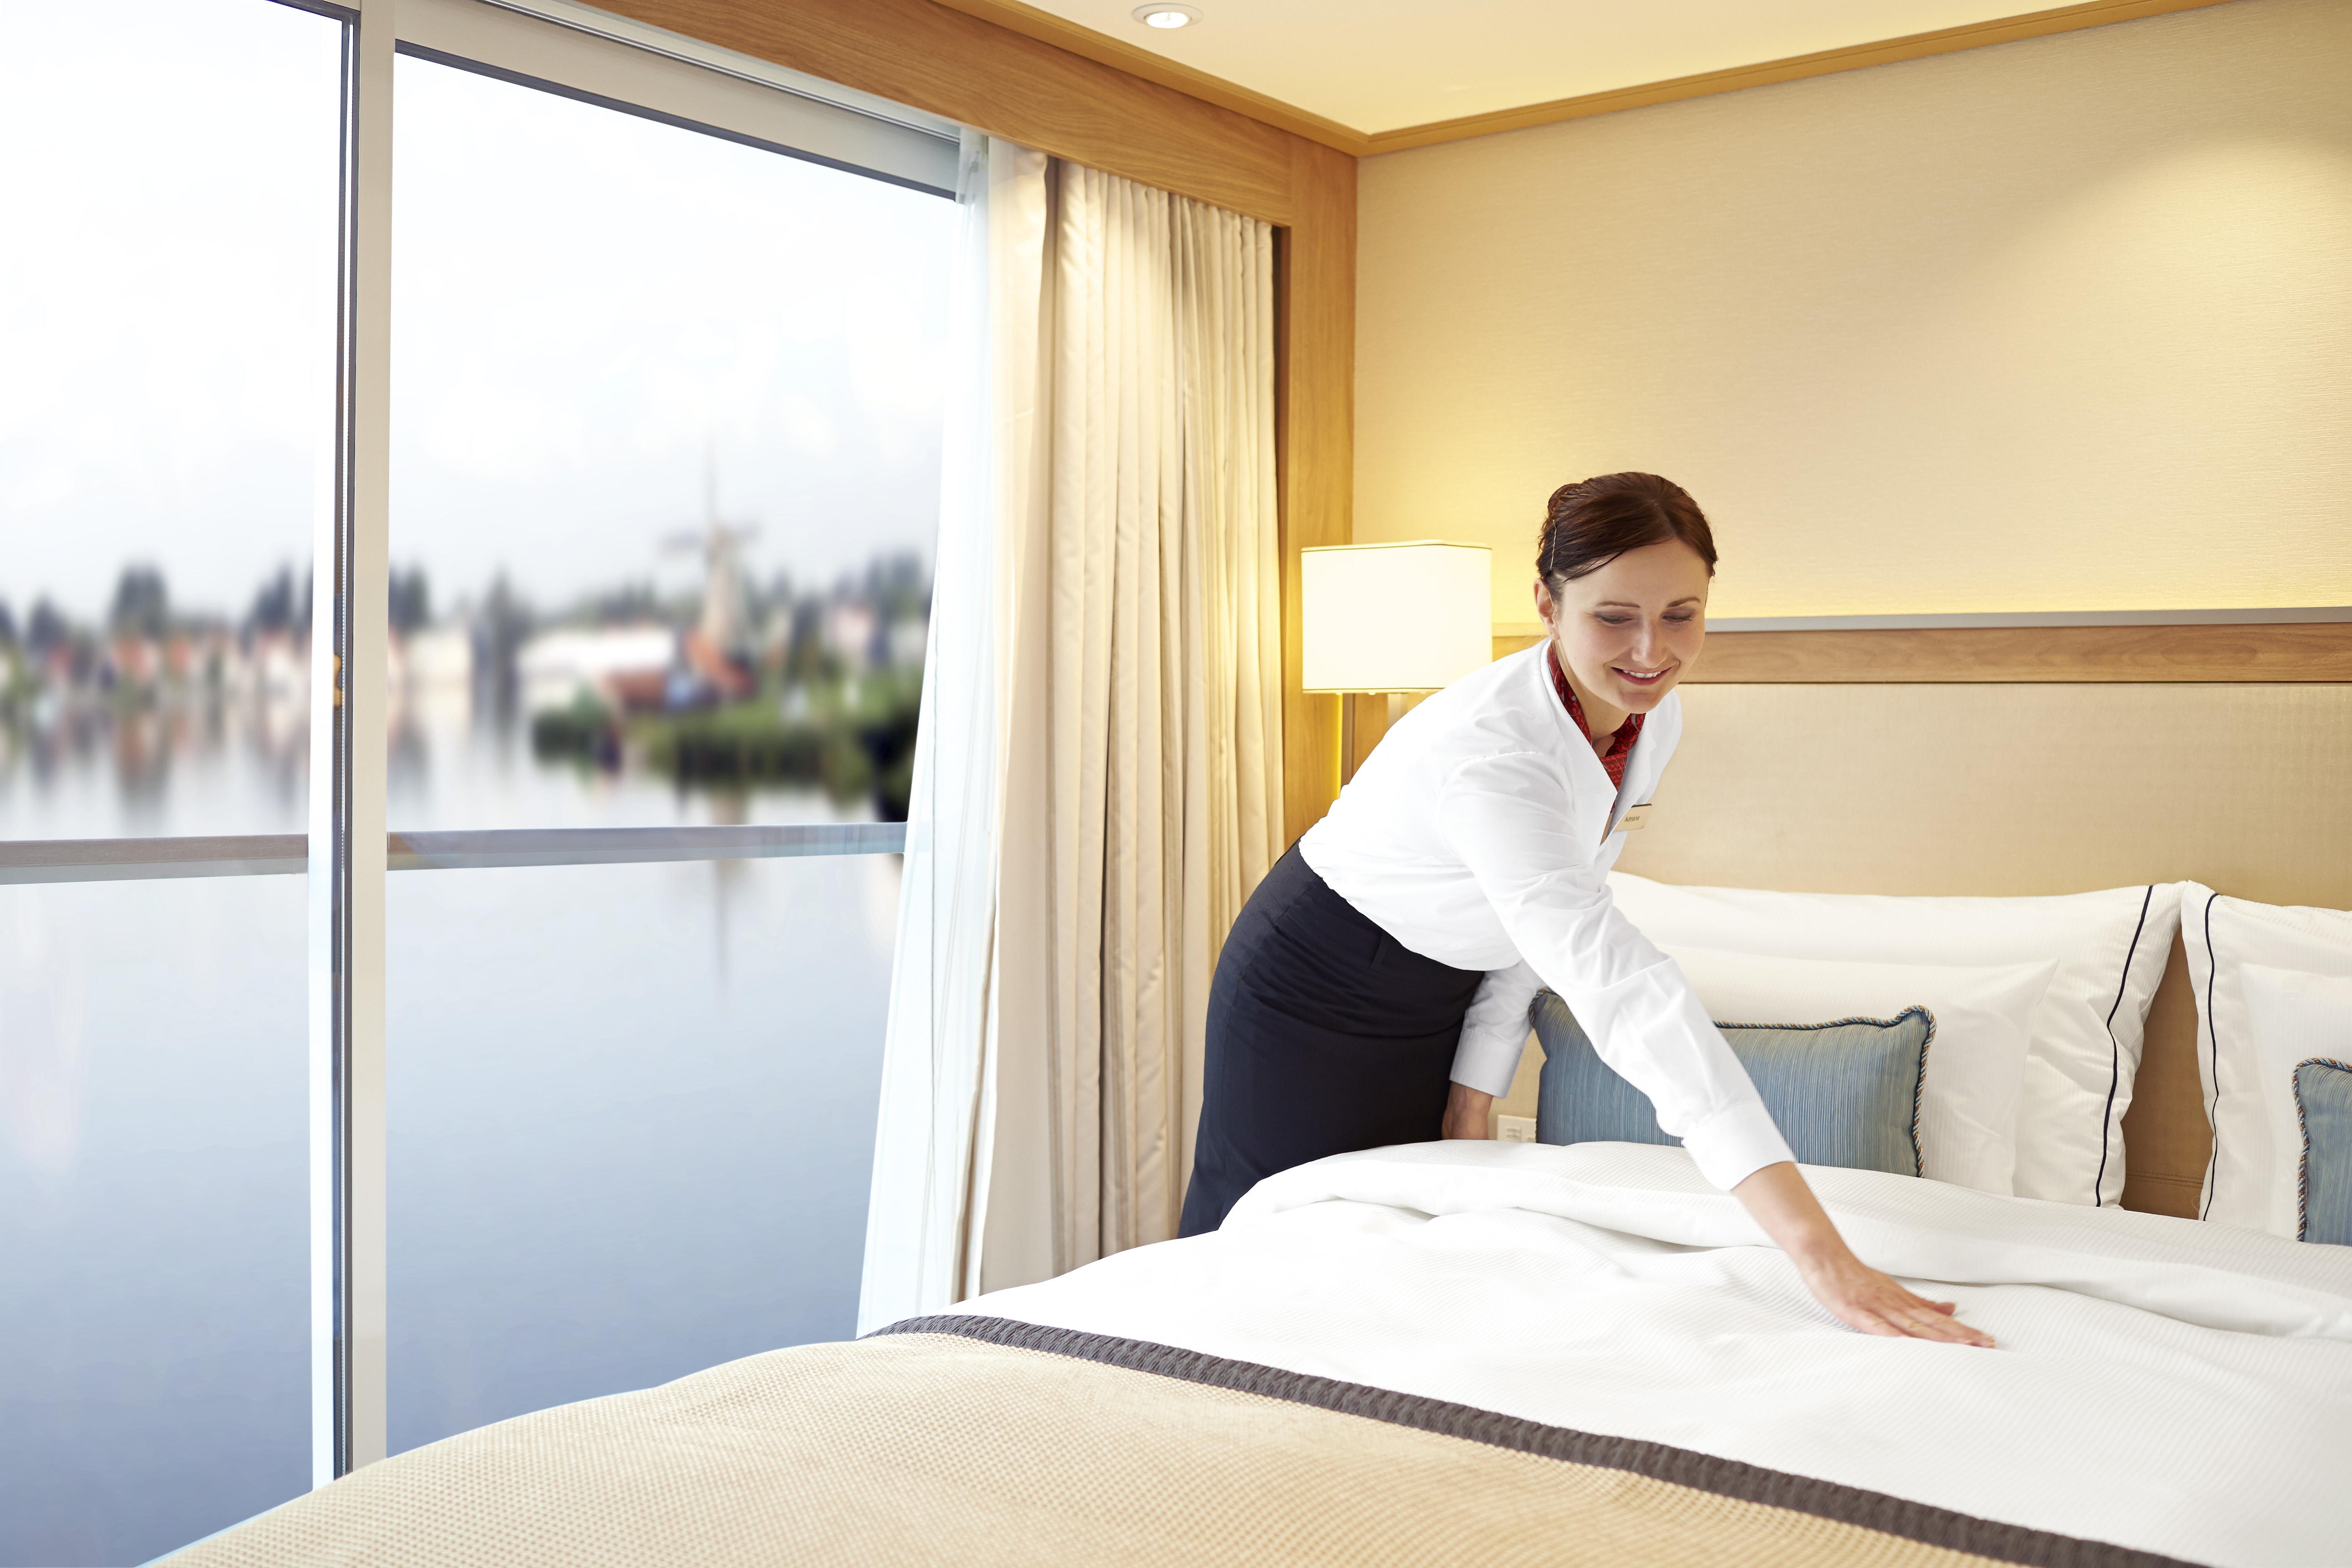 Cabin Assistant Cruiseships